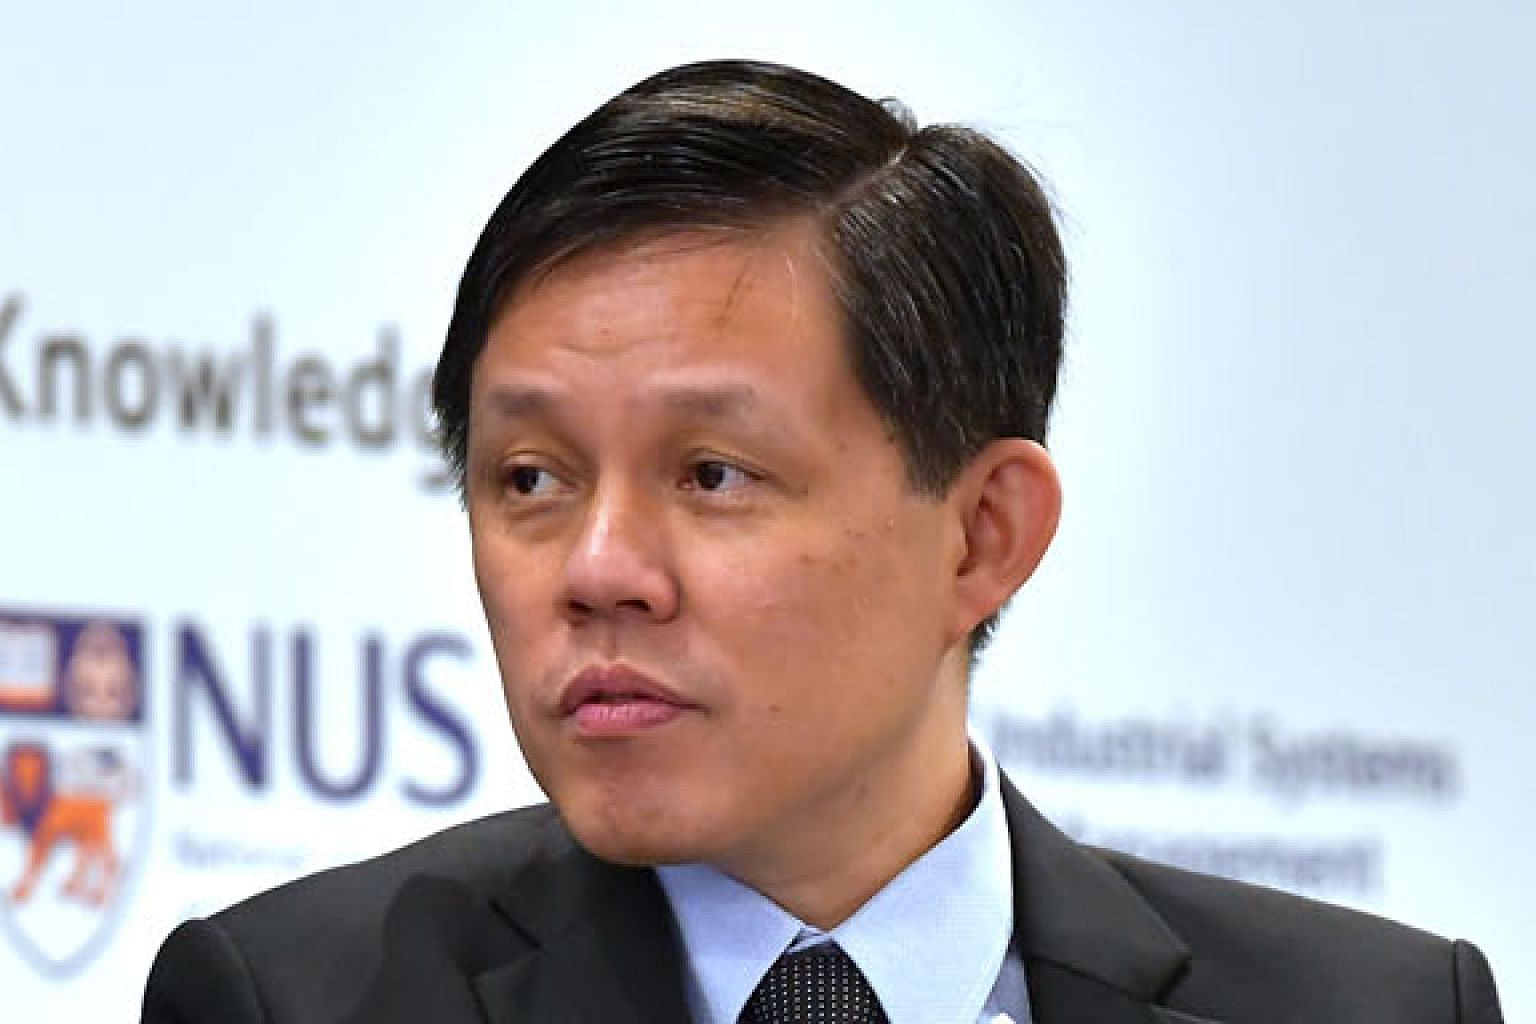 Mr Chan Chun Sing says what is needed goes beyond money as money helps to alleviate only the temporary issues.